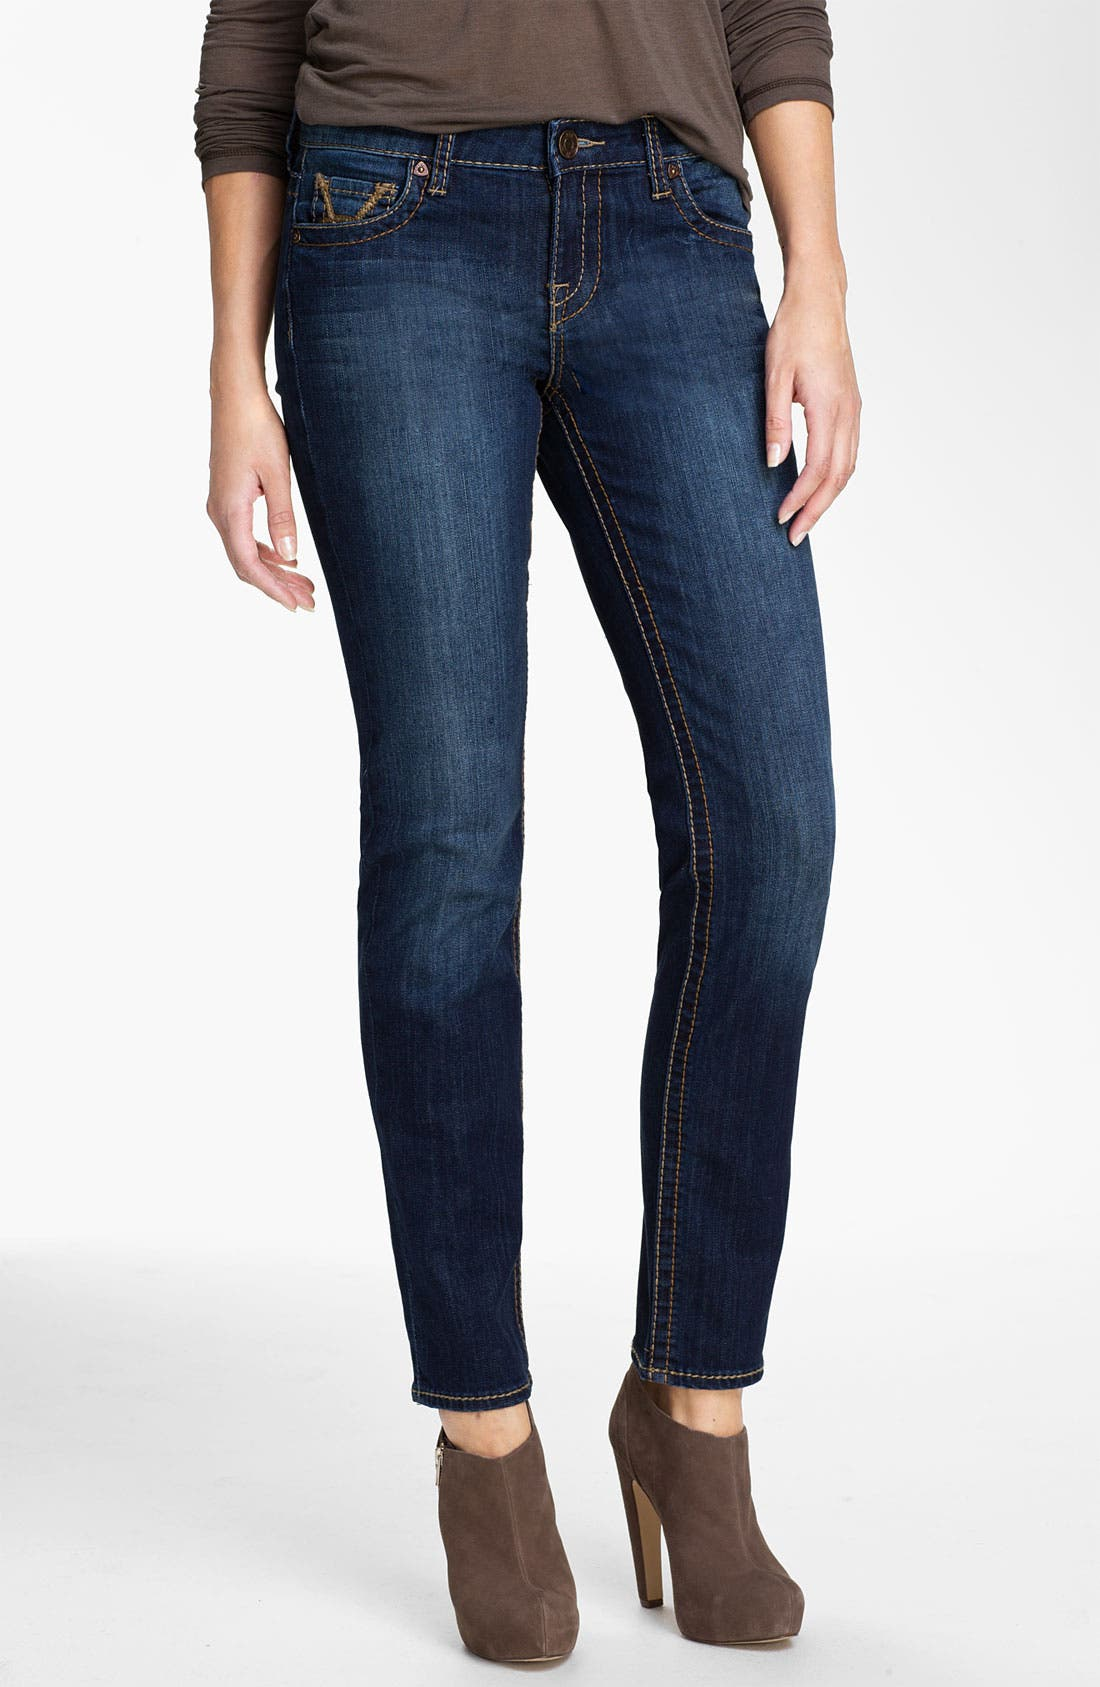 Alternate Image 1 Selected - KUT from the Kloth 'Stevie' Straight Leg Jeans (Gratitude) (Online Only)